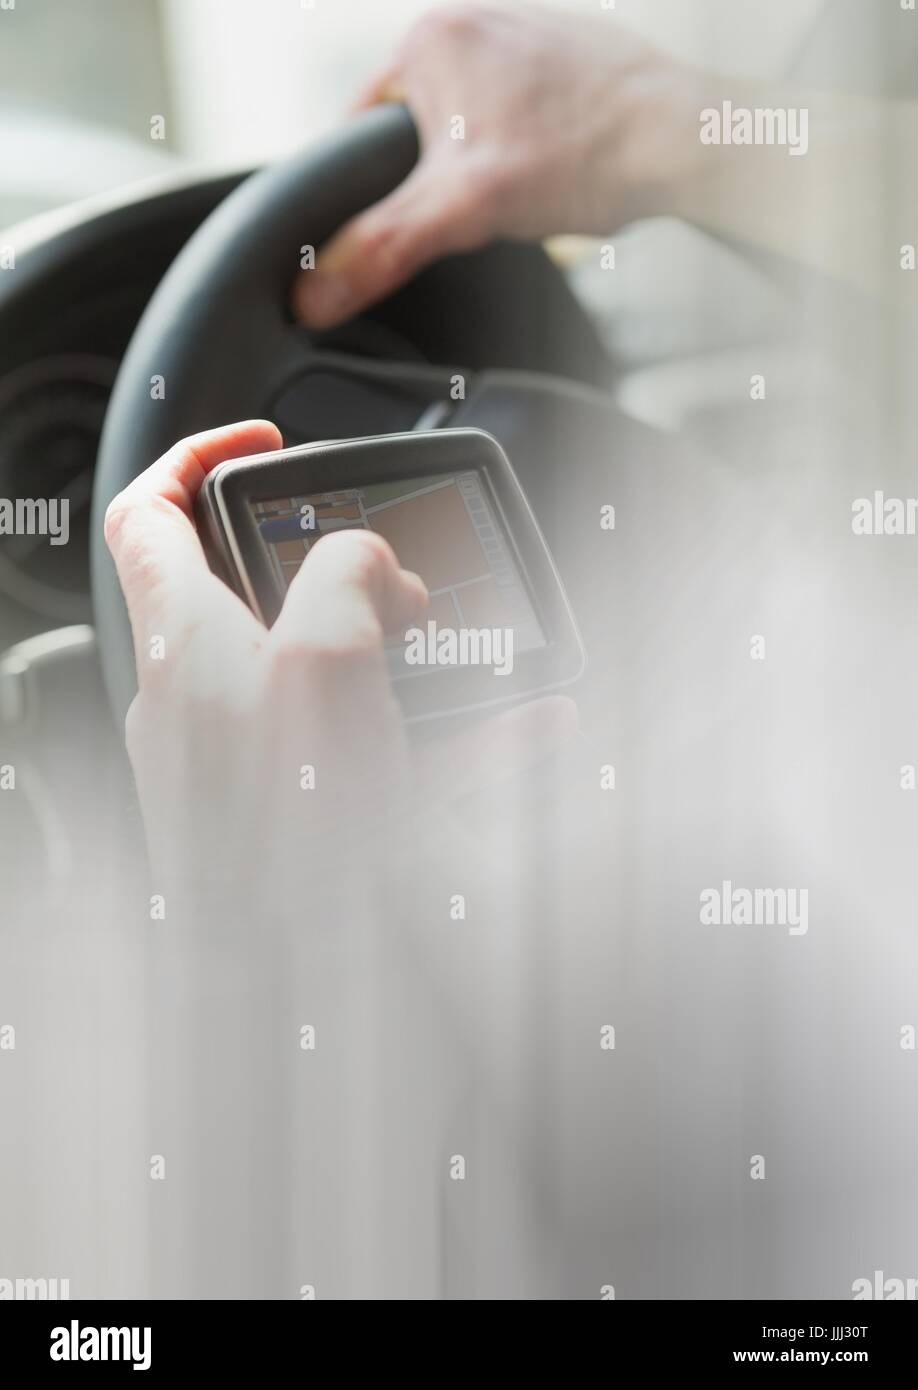 Holding GPS in car with transition effect 3d - Stock Image